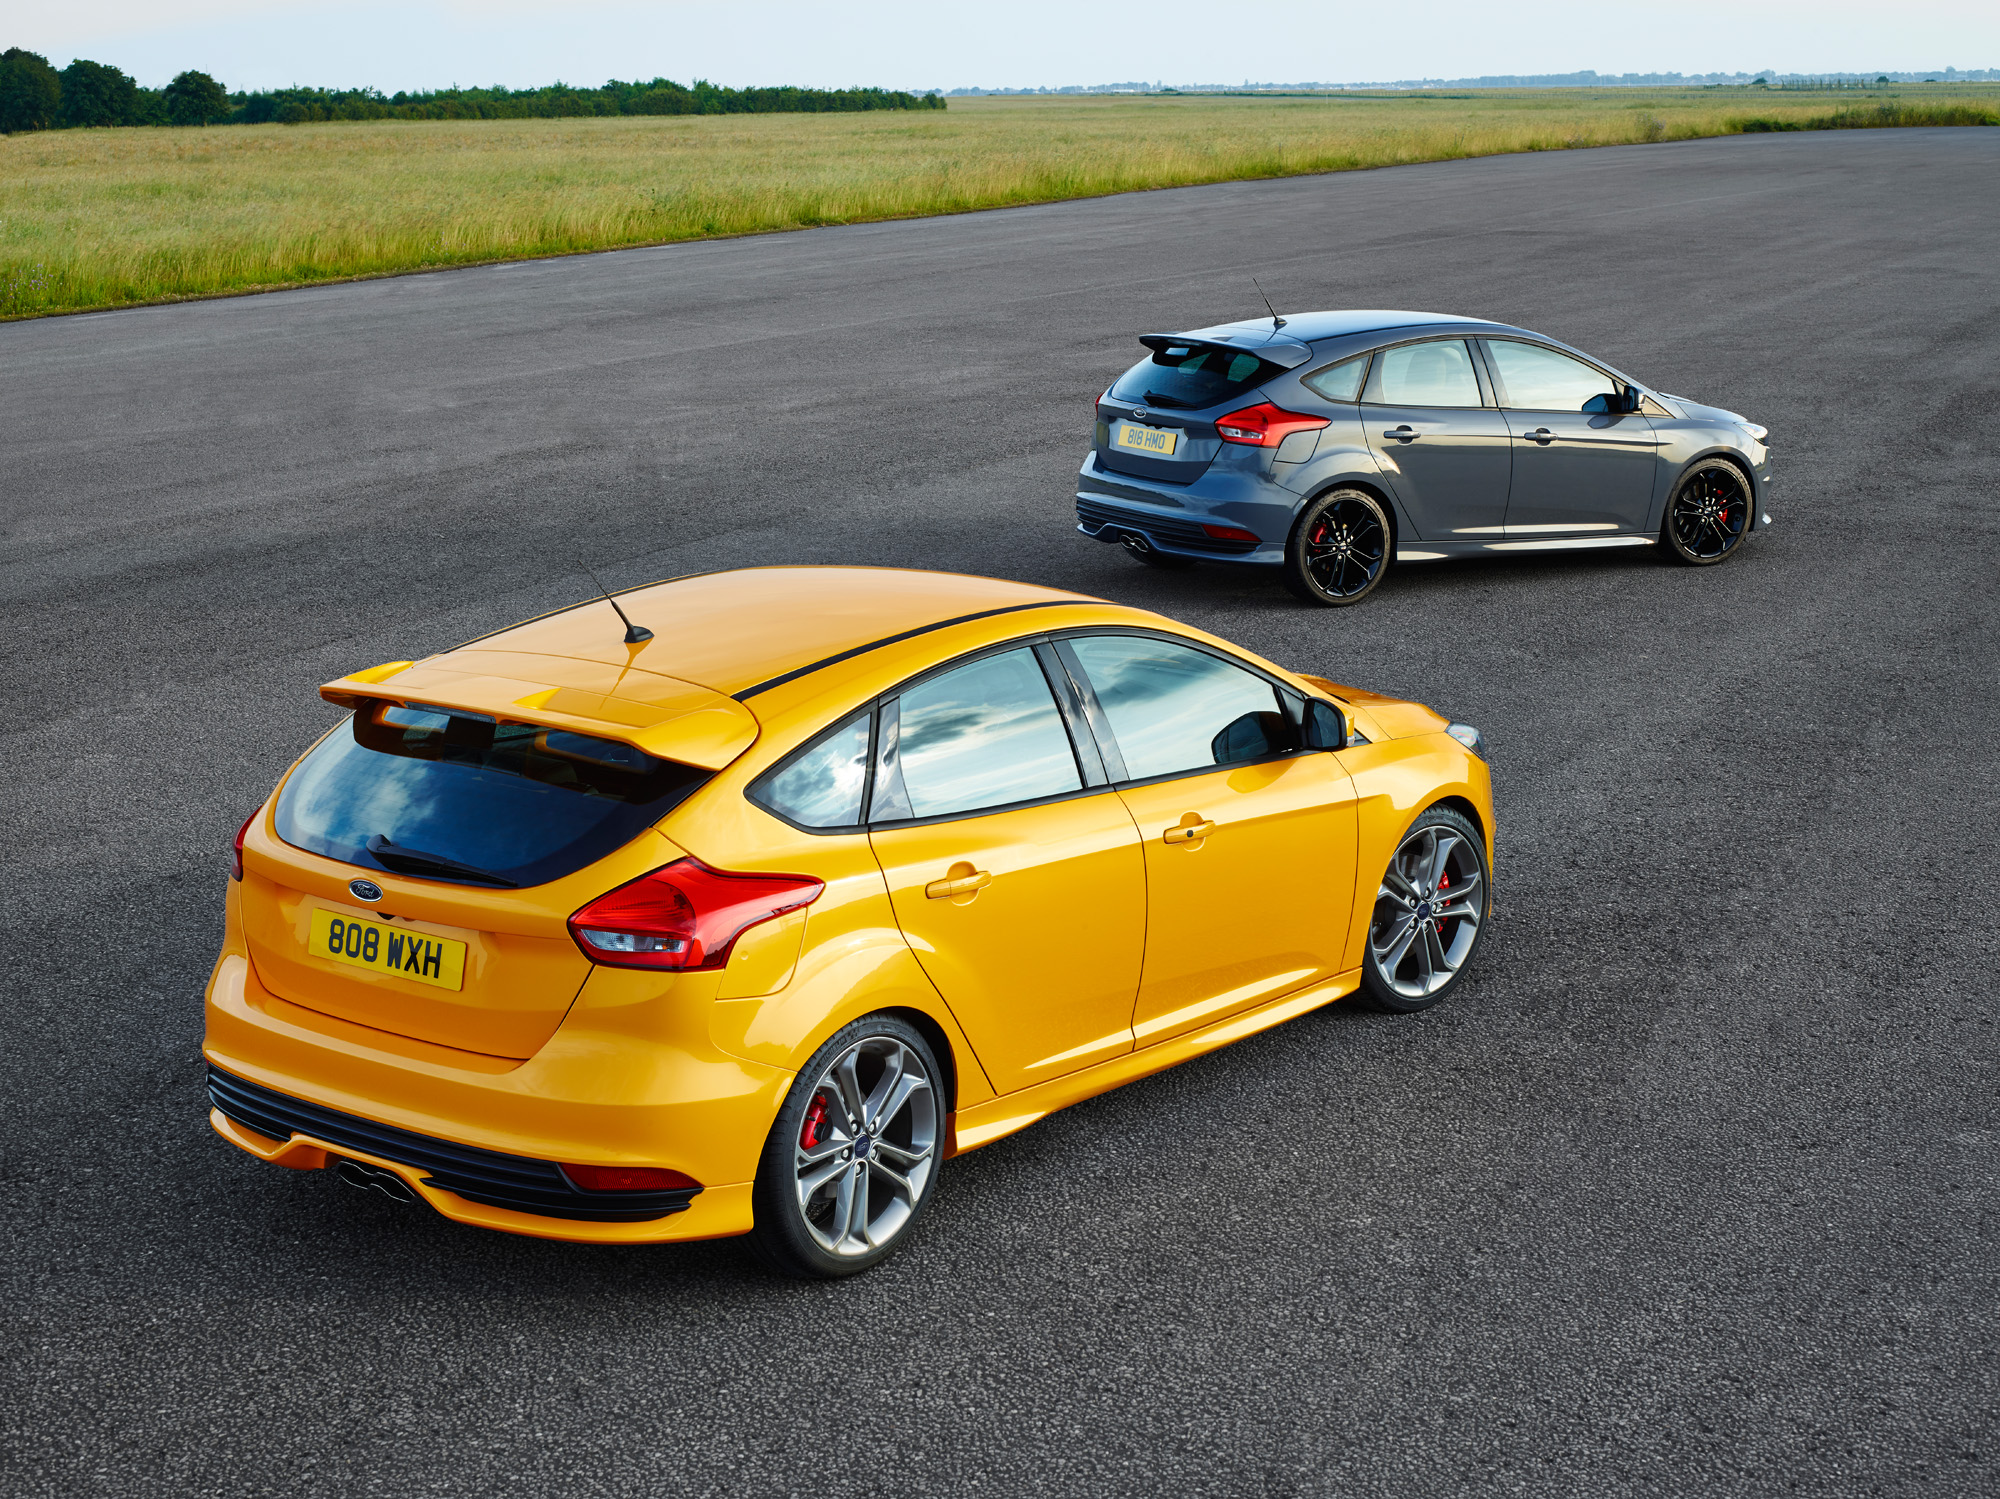 ford focus st 2014 aufgefrischter sportgarant mit 250 ps tuning. Black Bedroom Furniture Sets. Home Design Ideas